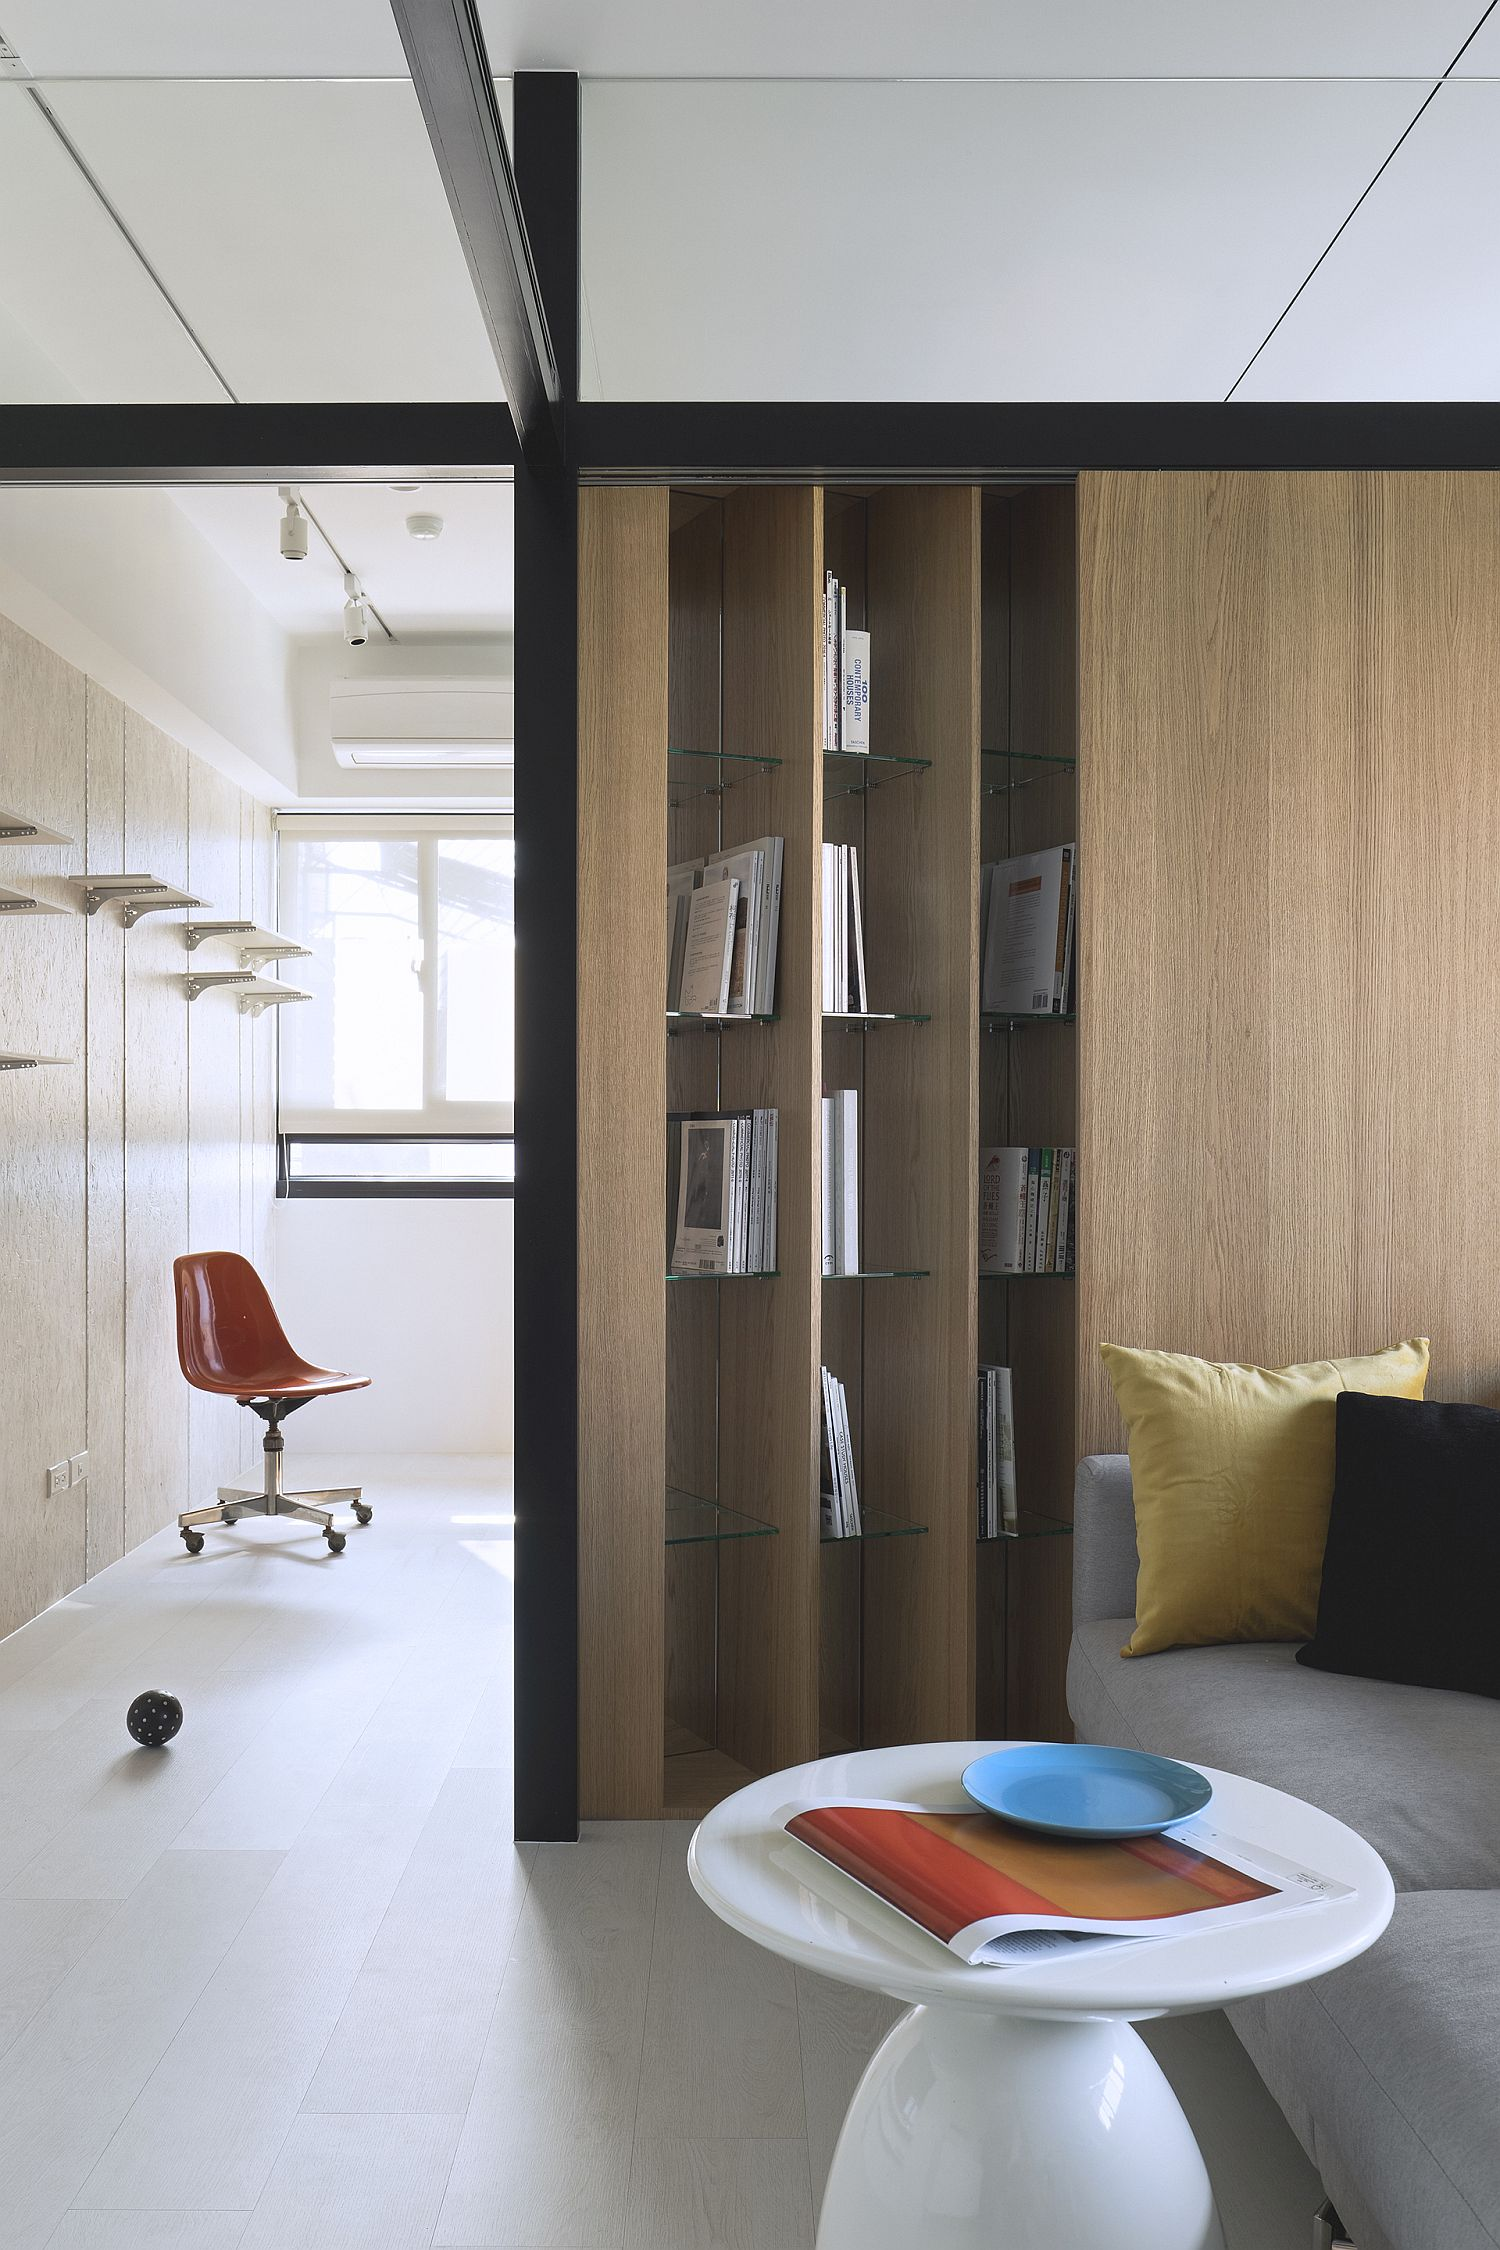 Angled bookshelf design brings something unique to the bedroom